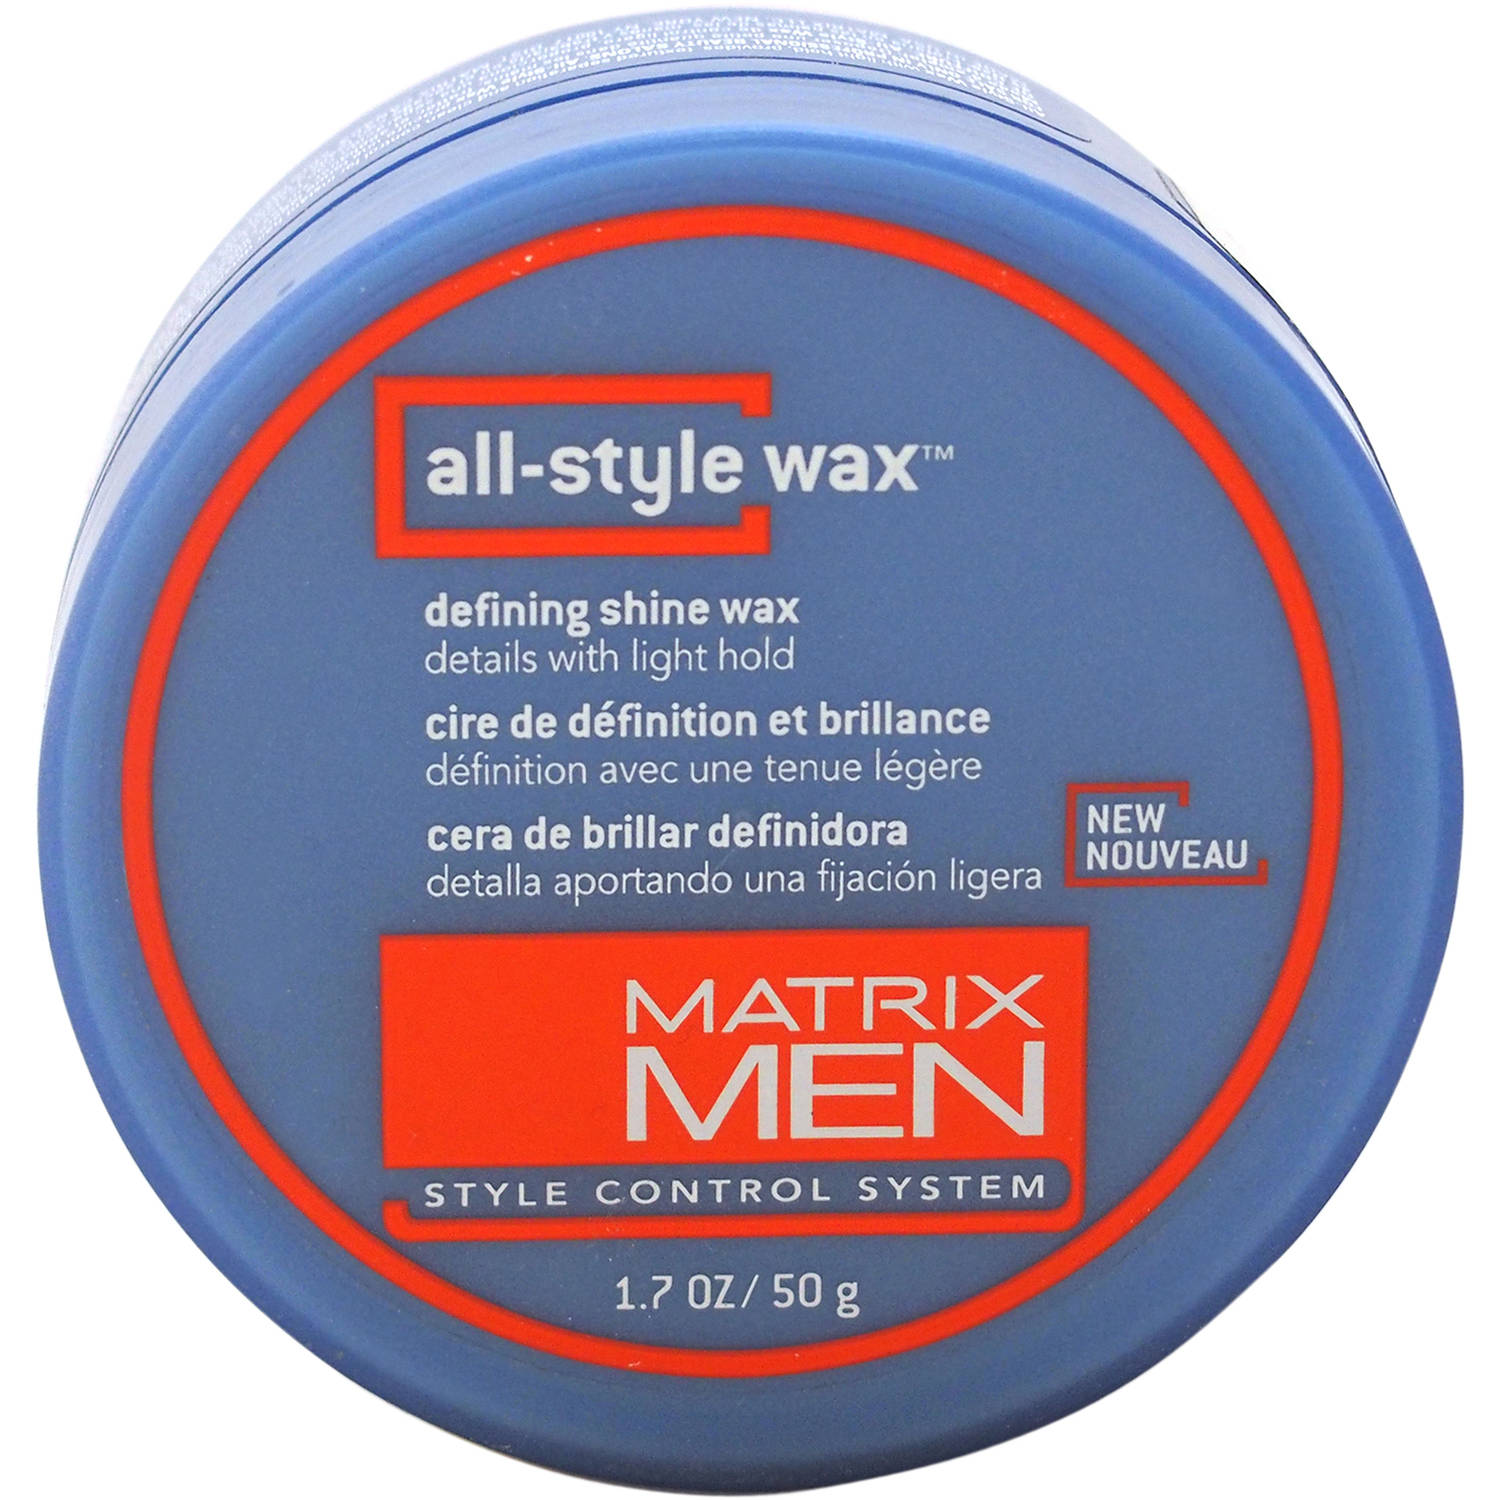 Matrix All-Style Wax Defining Shine Light Hold